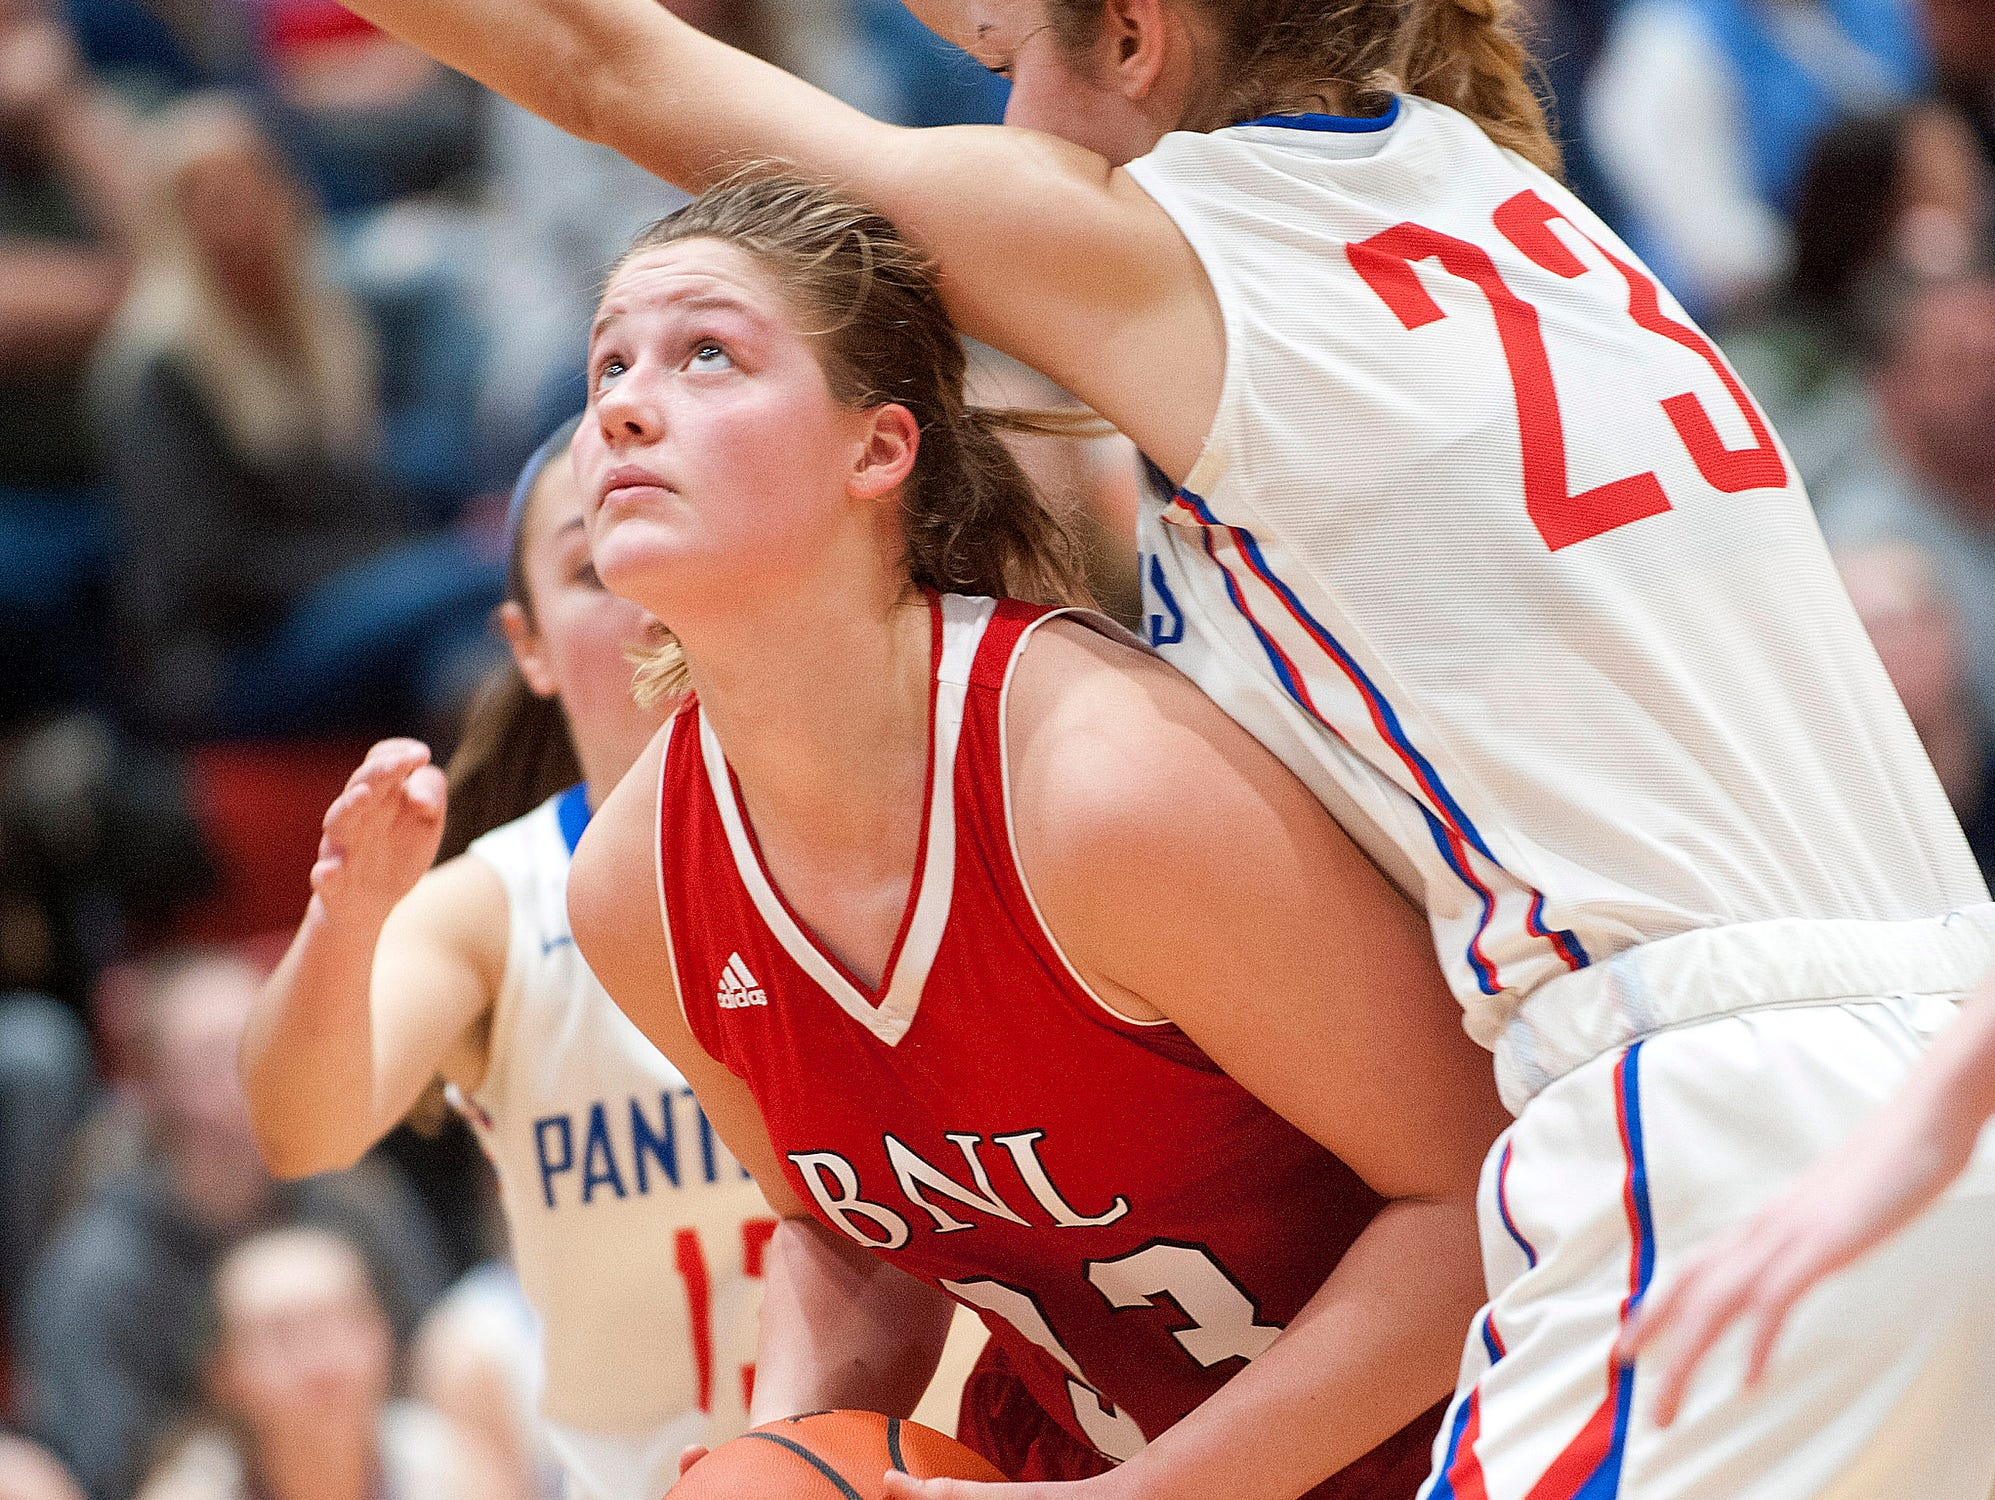 Bedford North Lawrence forward Jorie Allen looks to the basket as it is defended by Jennings County center-forward Callie Wilder.04 February 2019